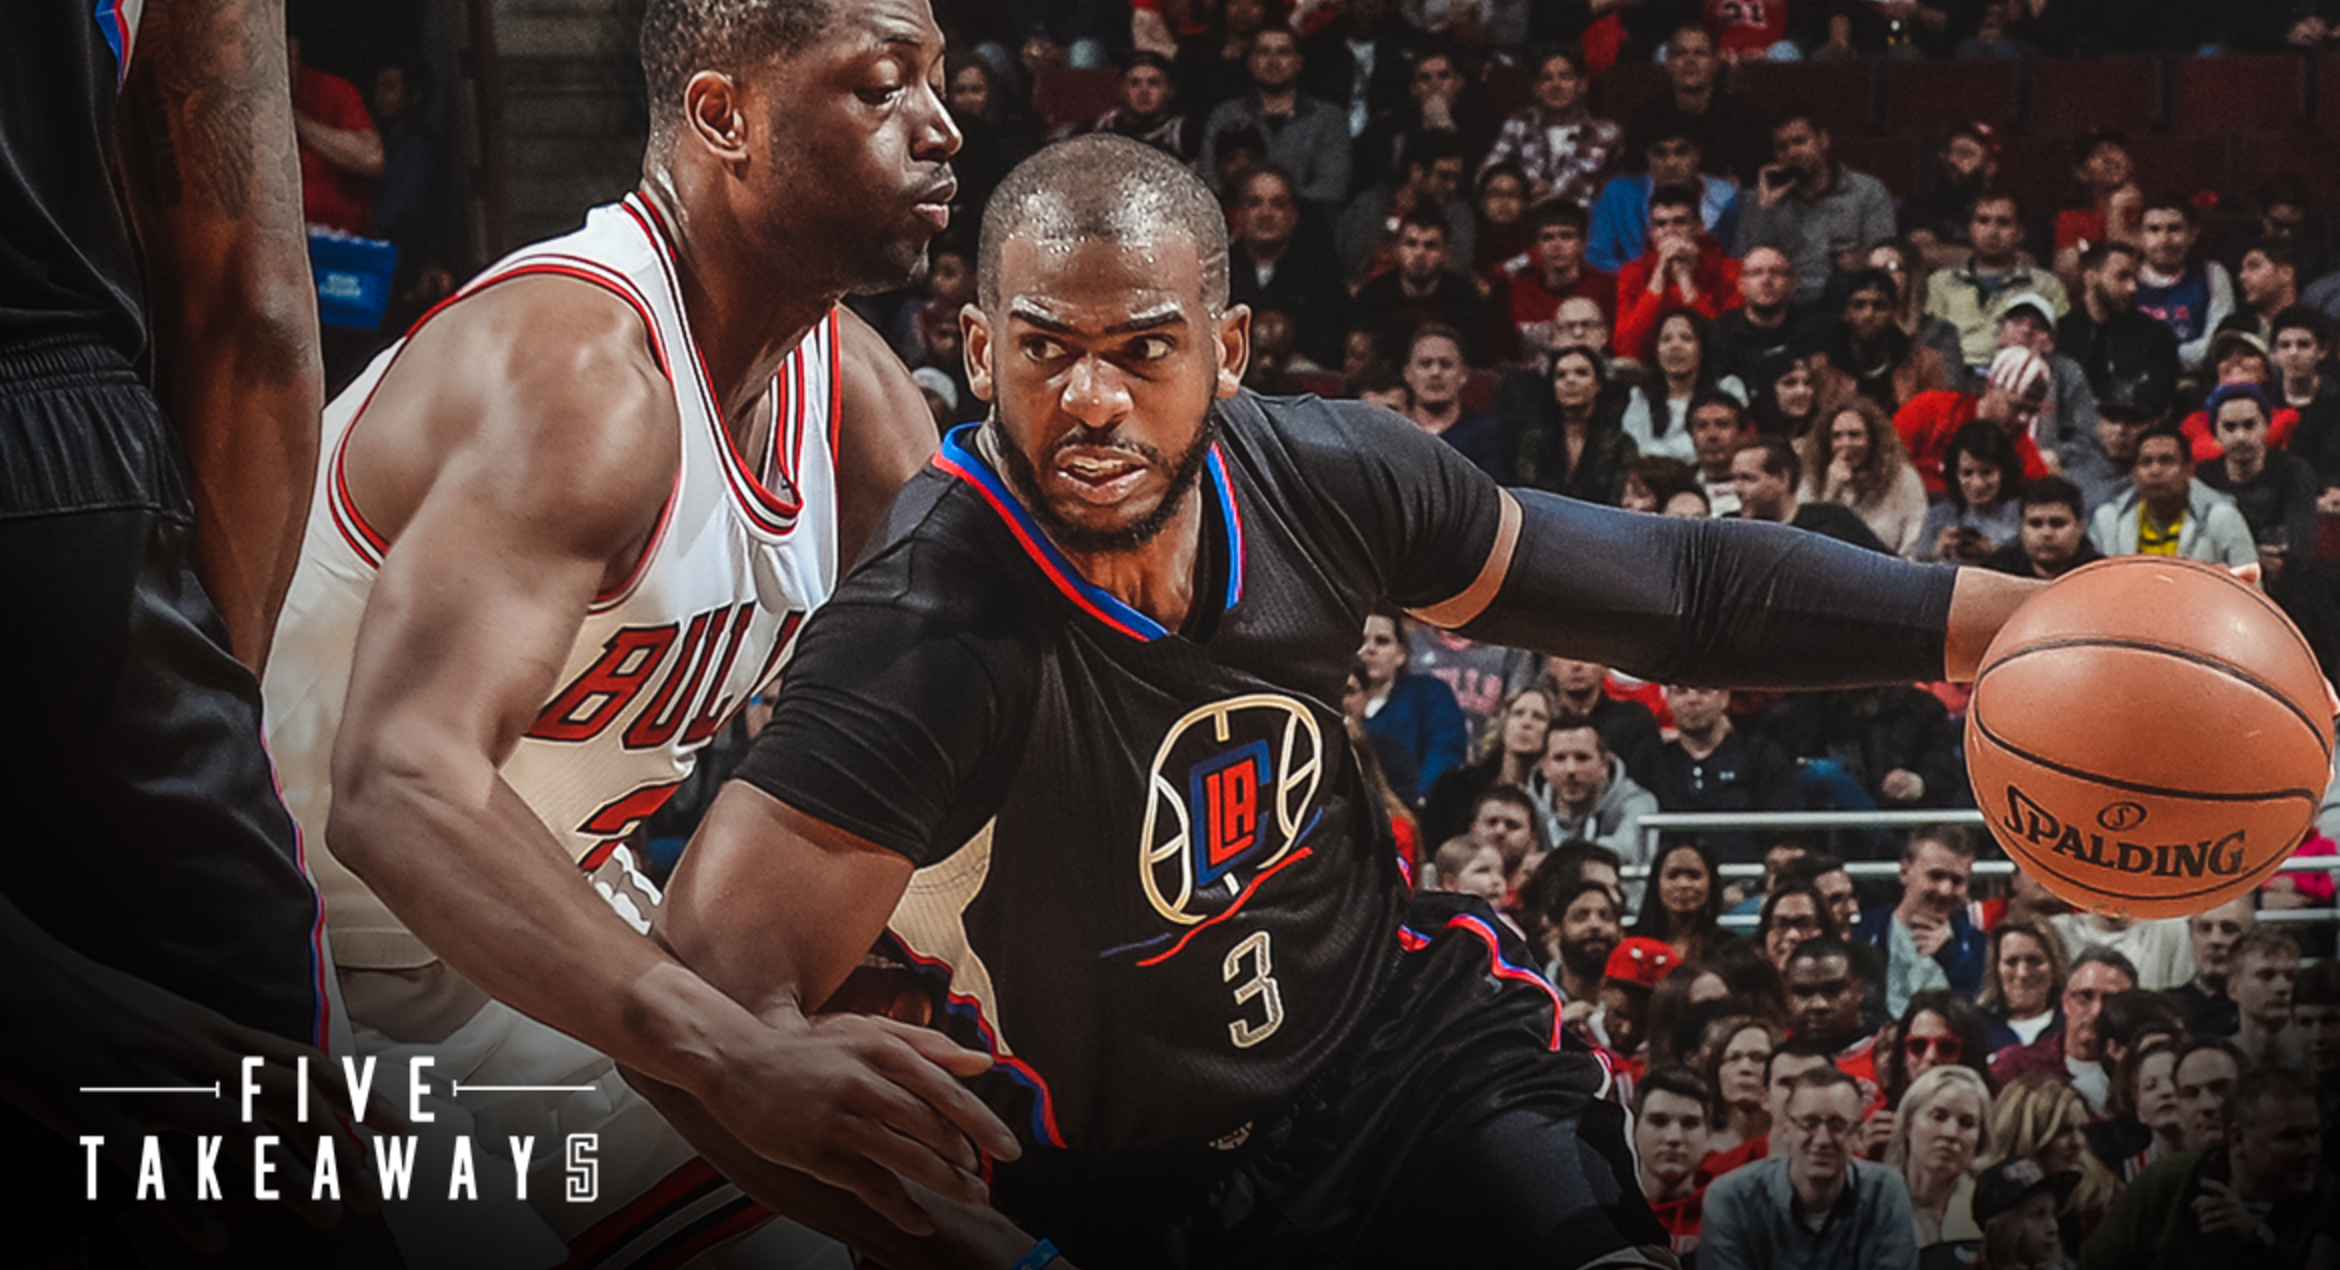 Five Takeaways – Clippers 101, Chicago Bulls 91